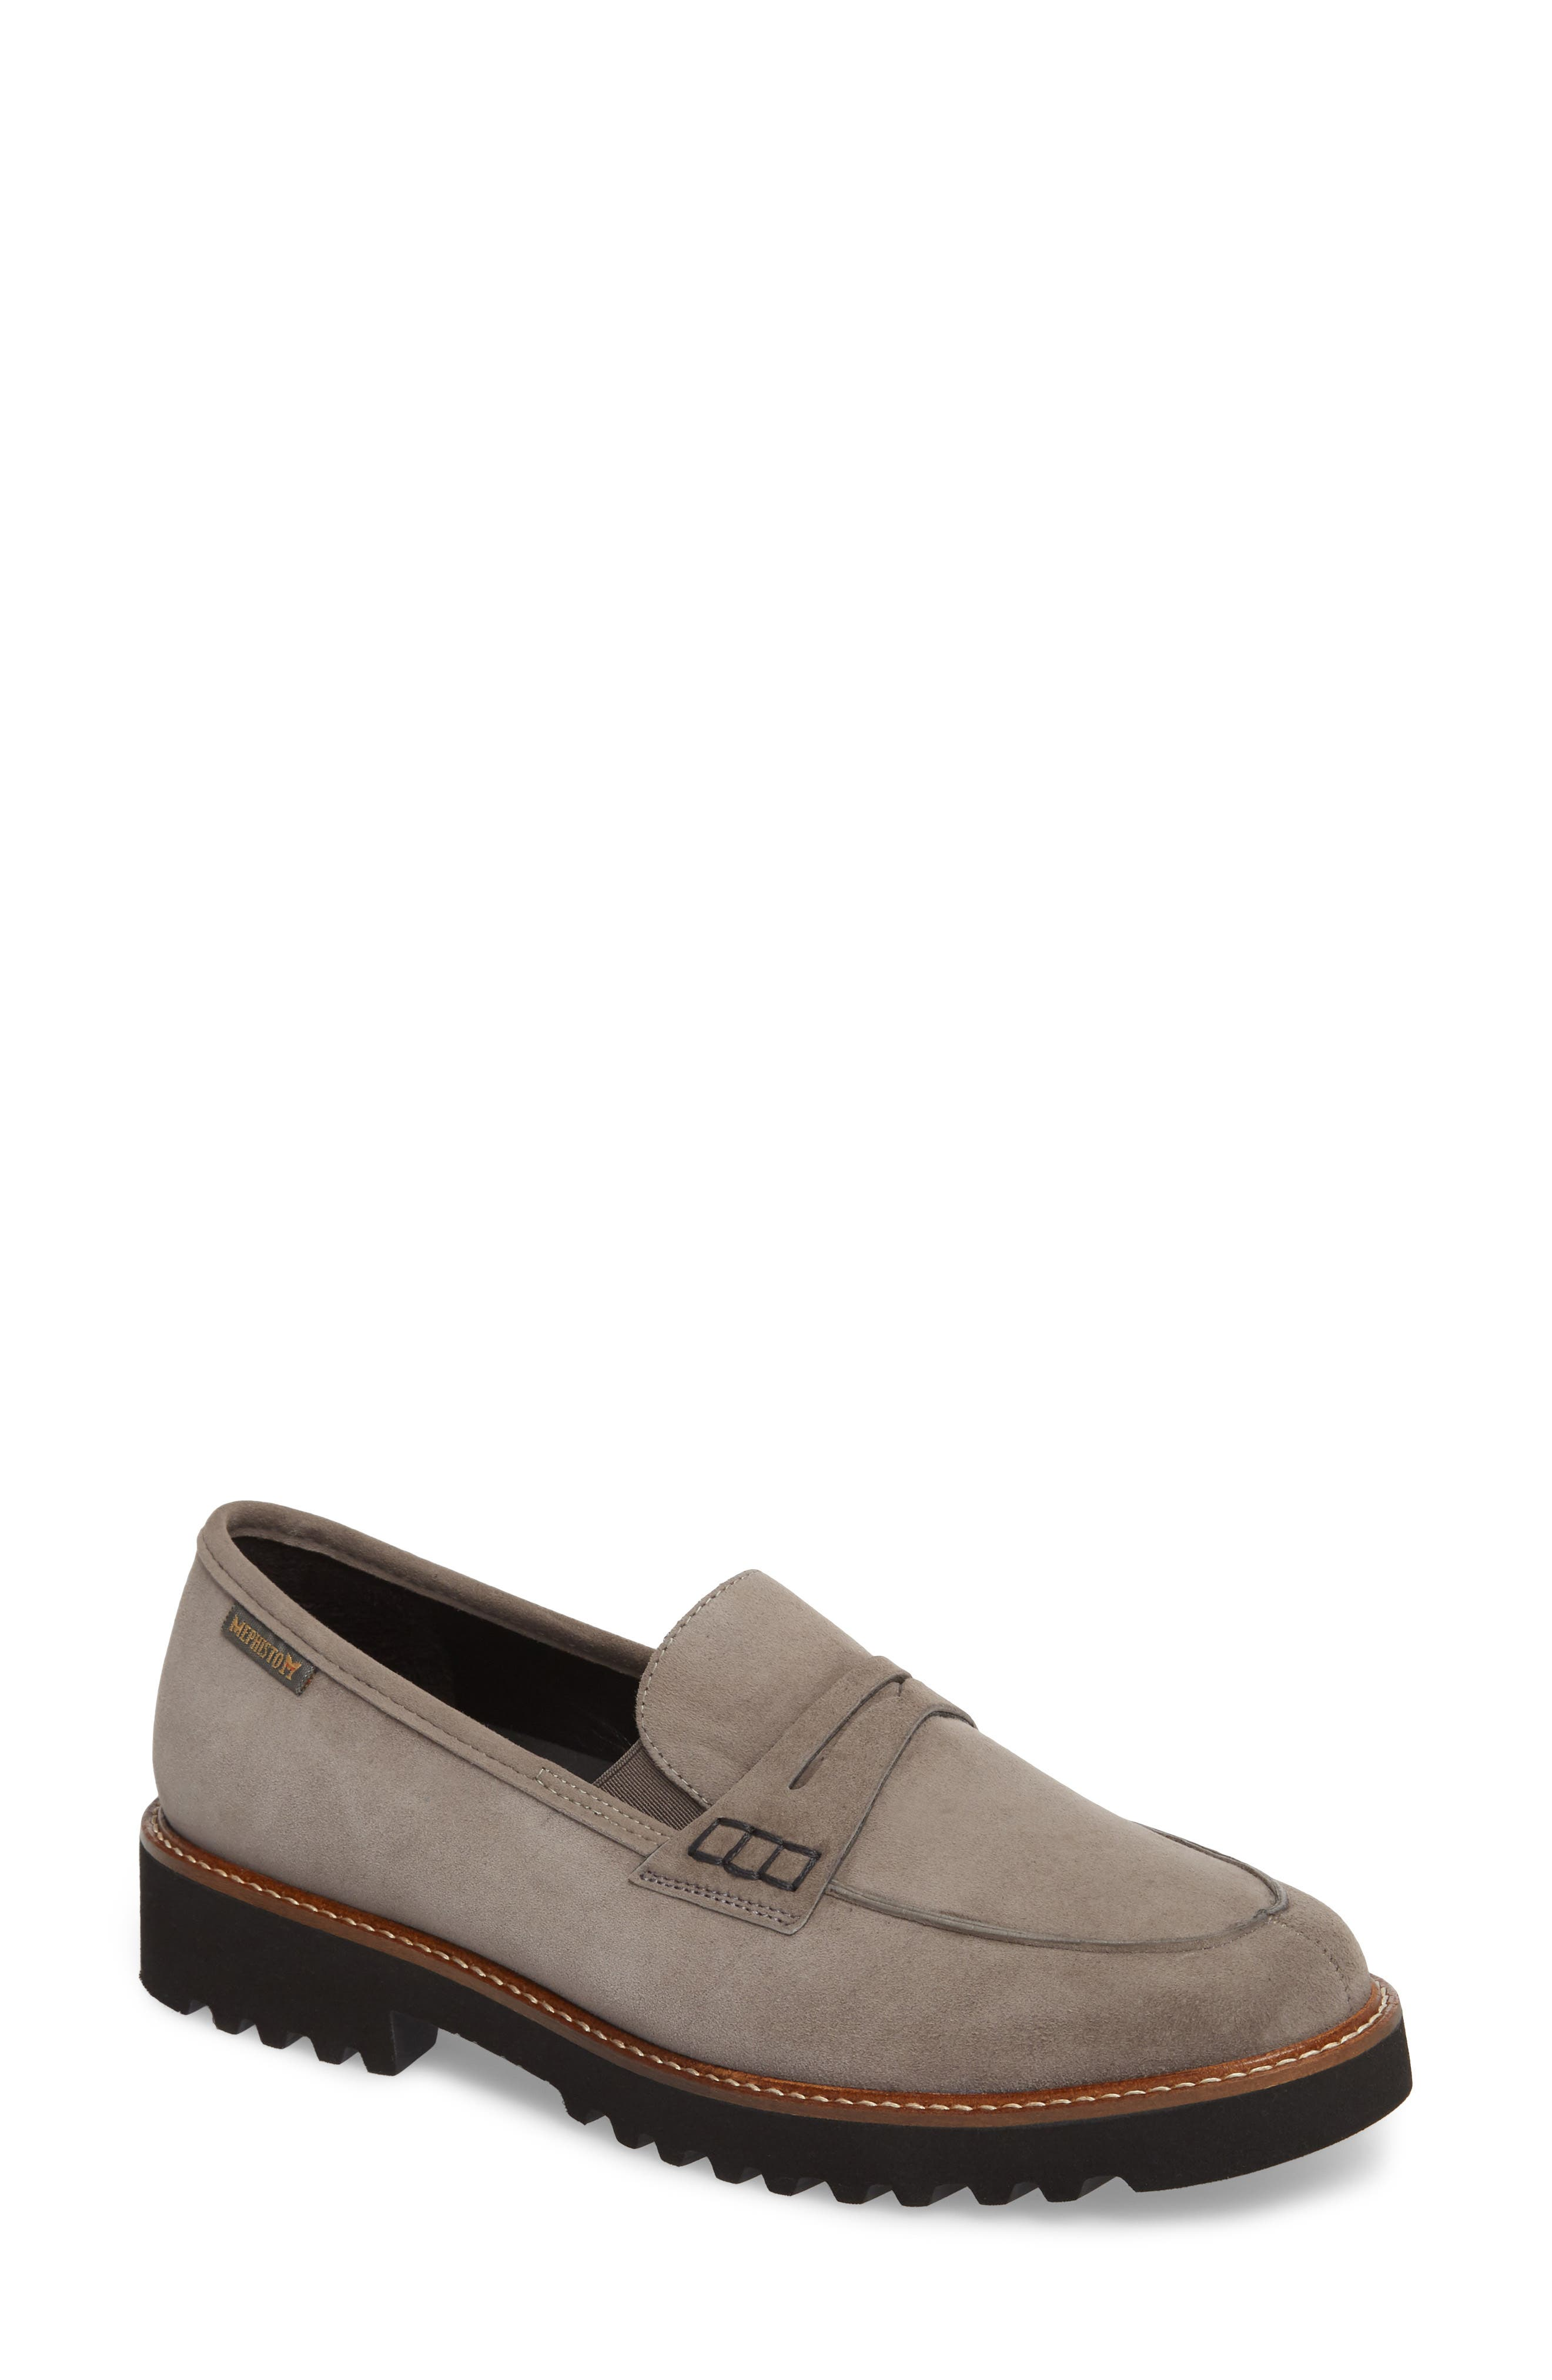 MEPHISTO, Sidney Penny Loafer, Main thumbnail 1, color, GREY SUEDE